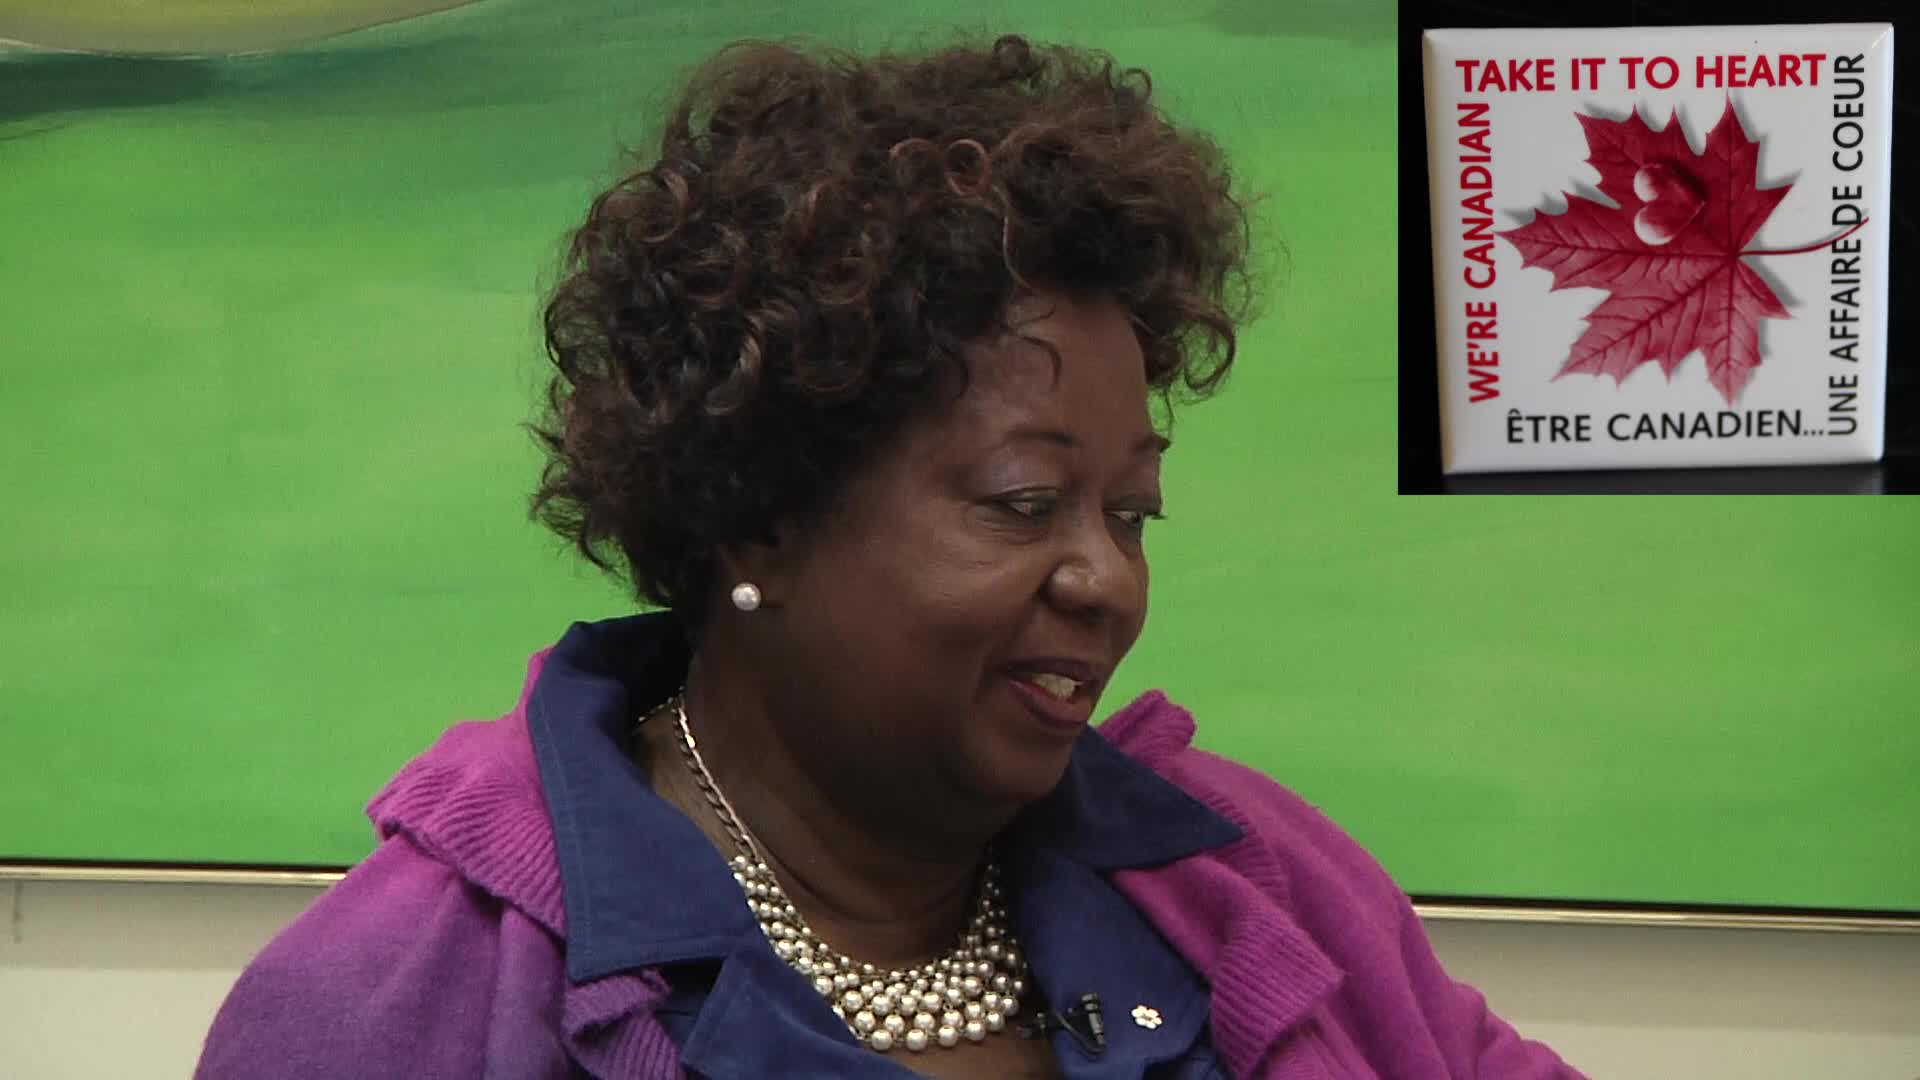 Jean Augustine interview: We're Canadian take it to heart button